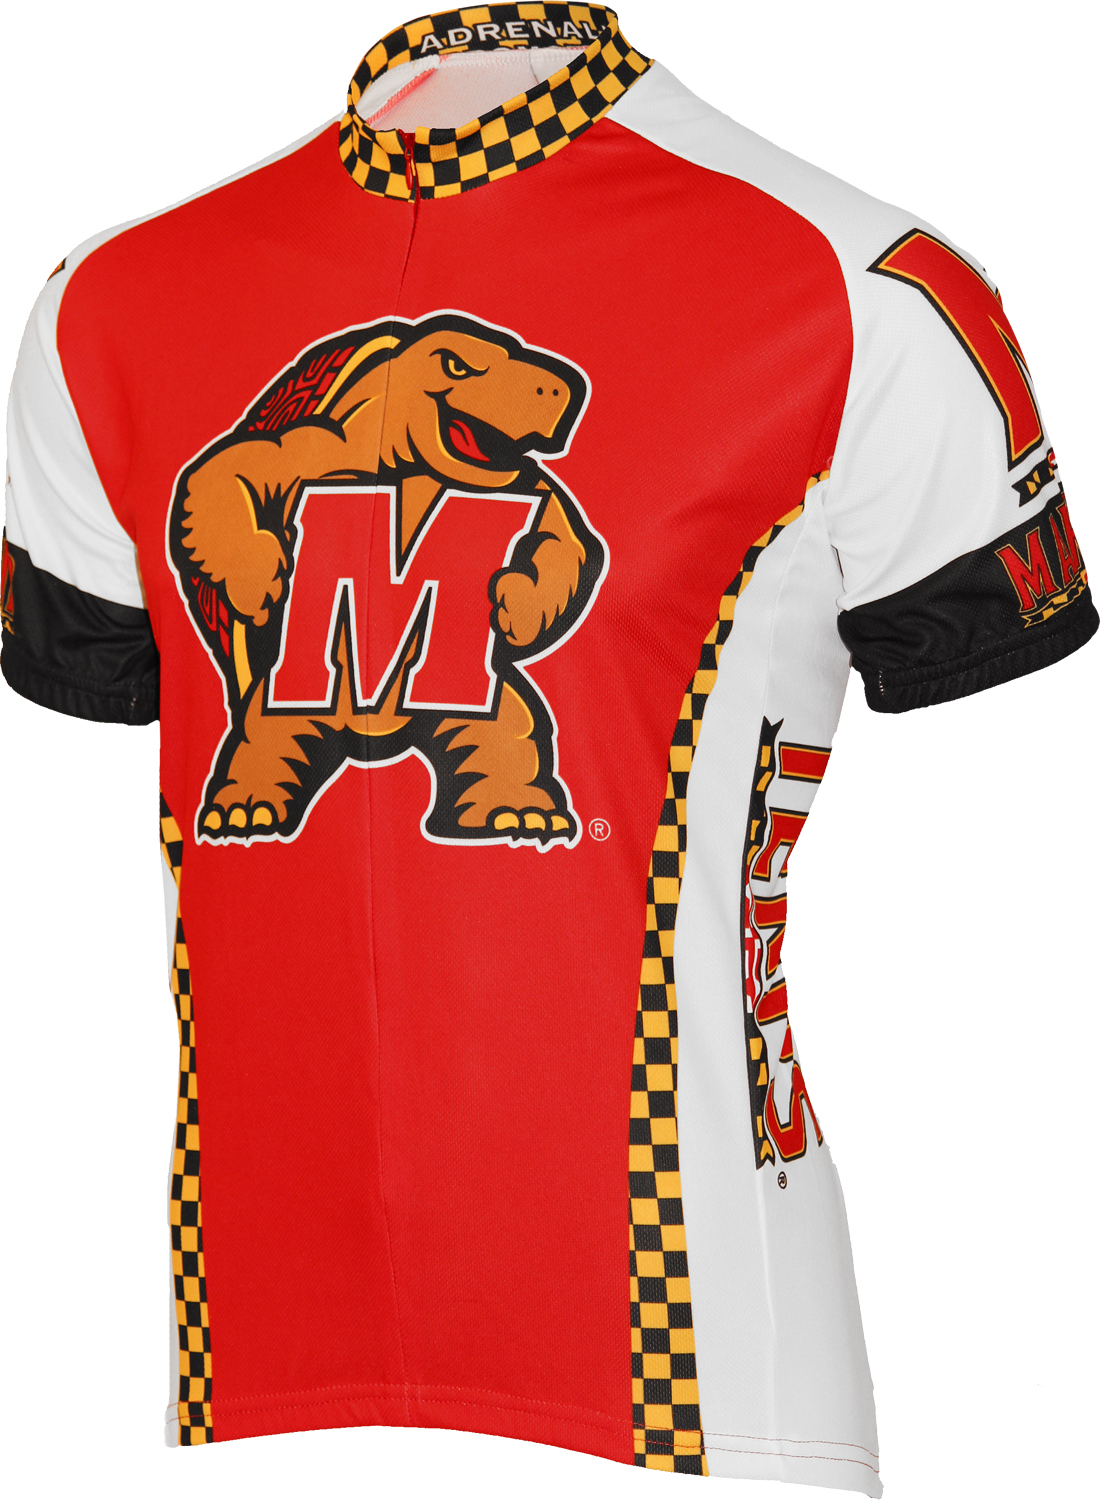 University of Maryland Terrapins Cycling Jersey